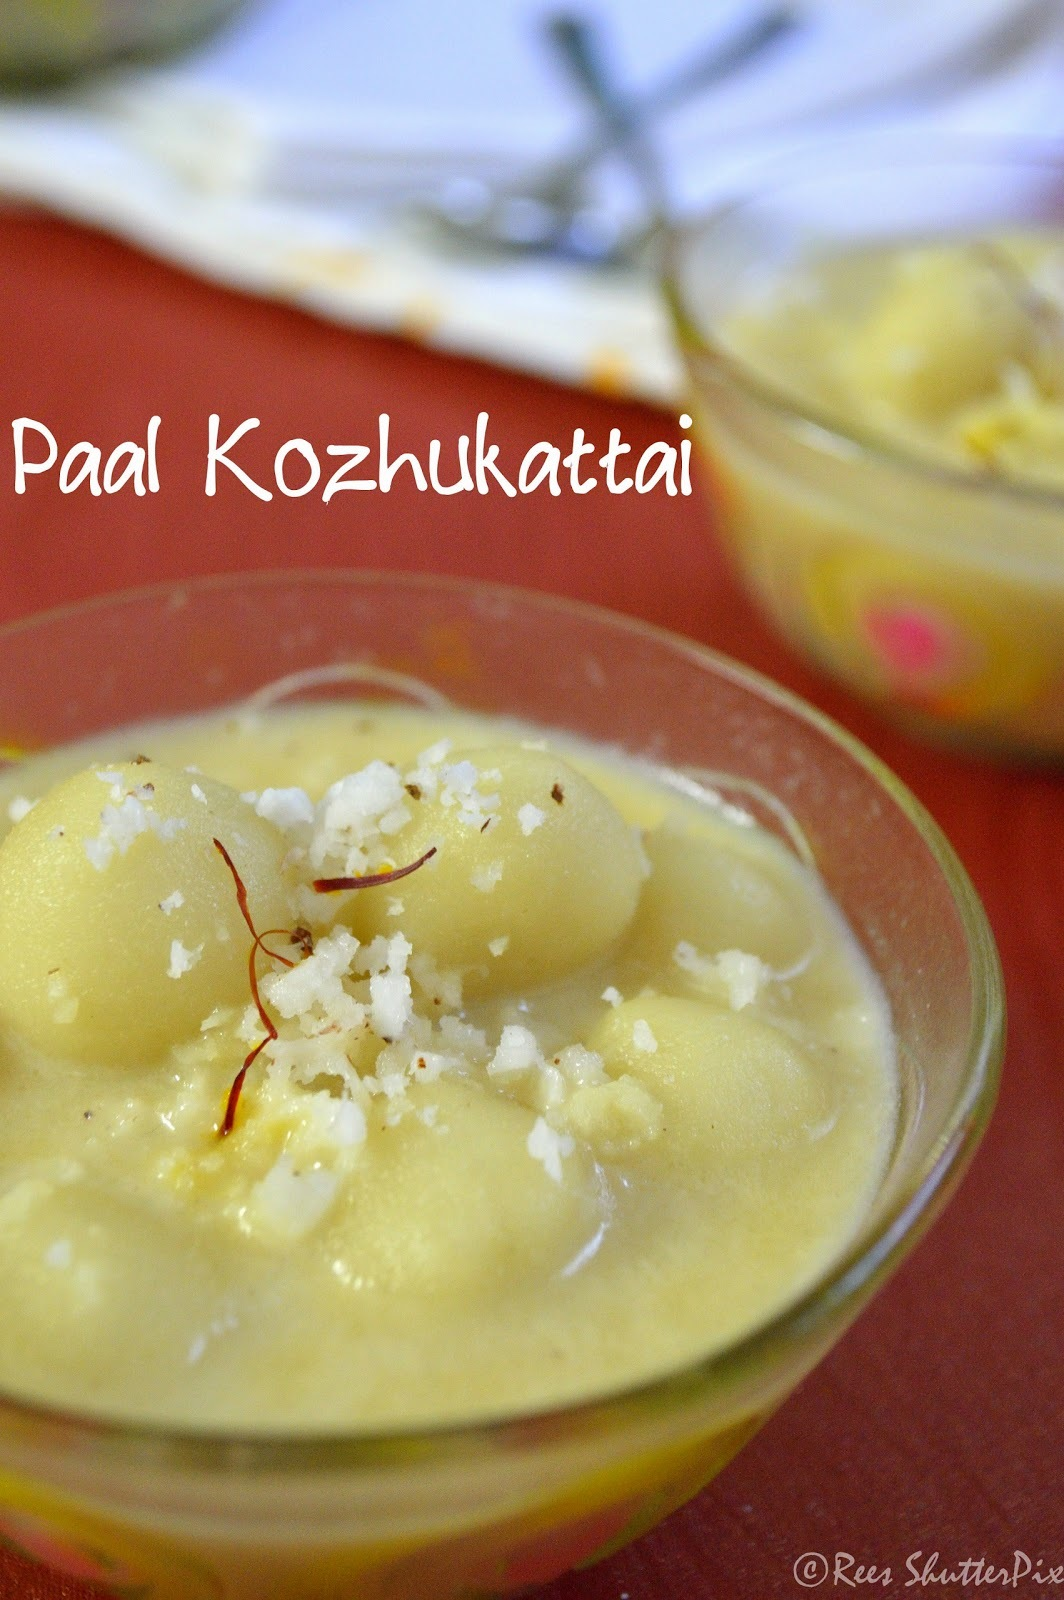 Paal Kozhukattai - A Guest Post by Ree Kasirajh